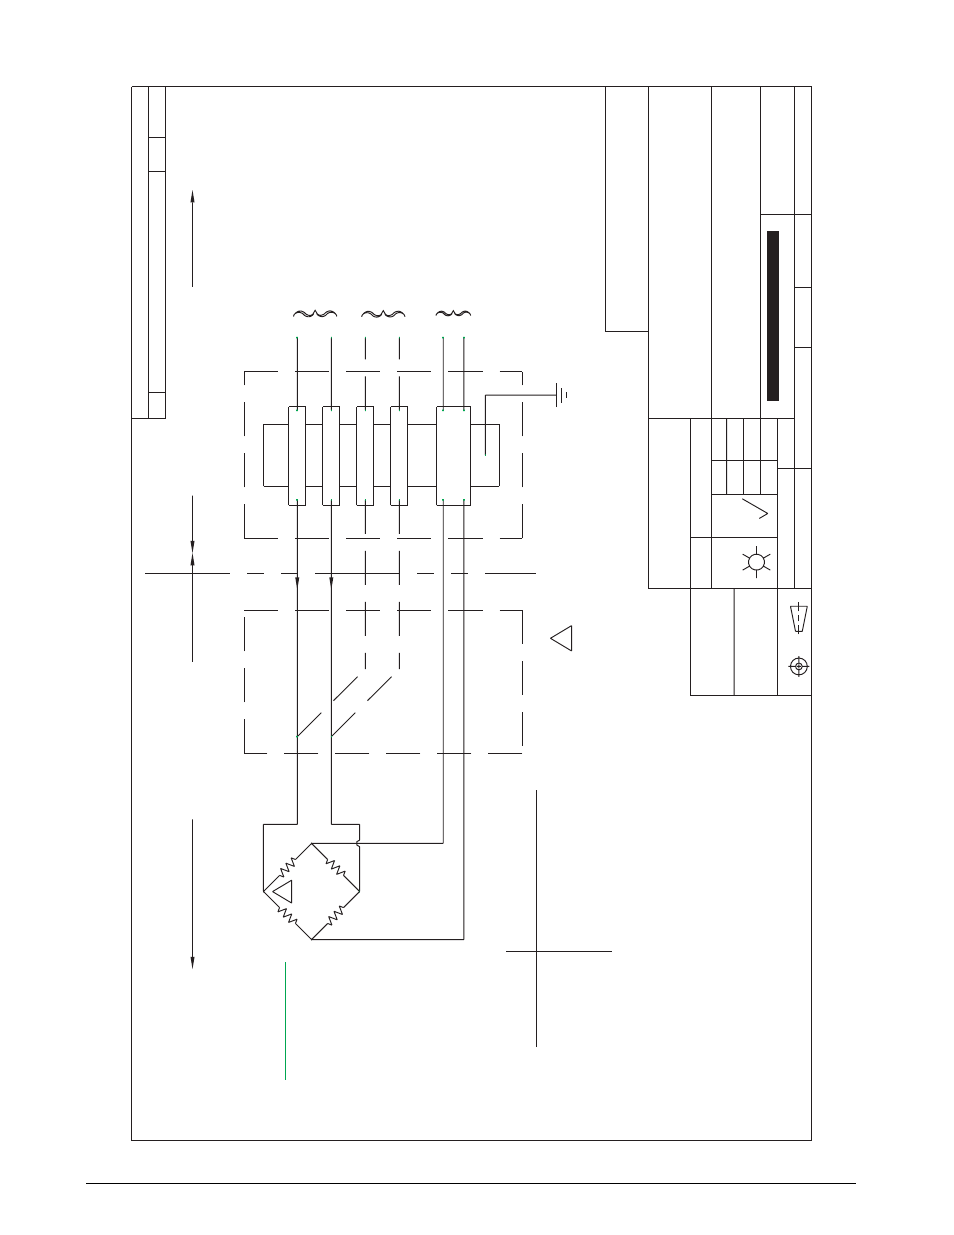 wiring diagram lebow load cells